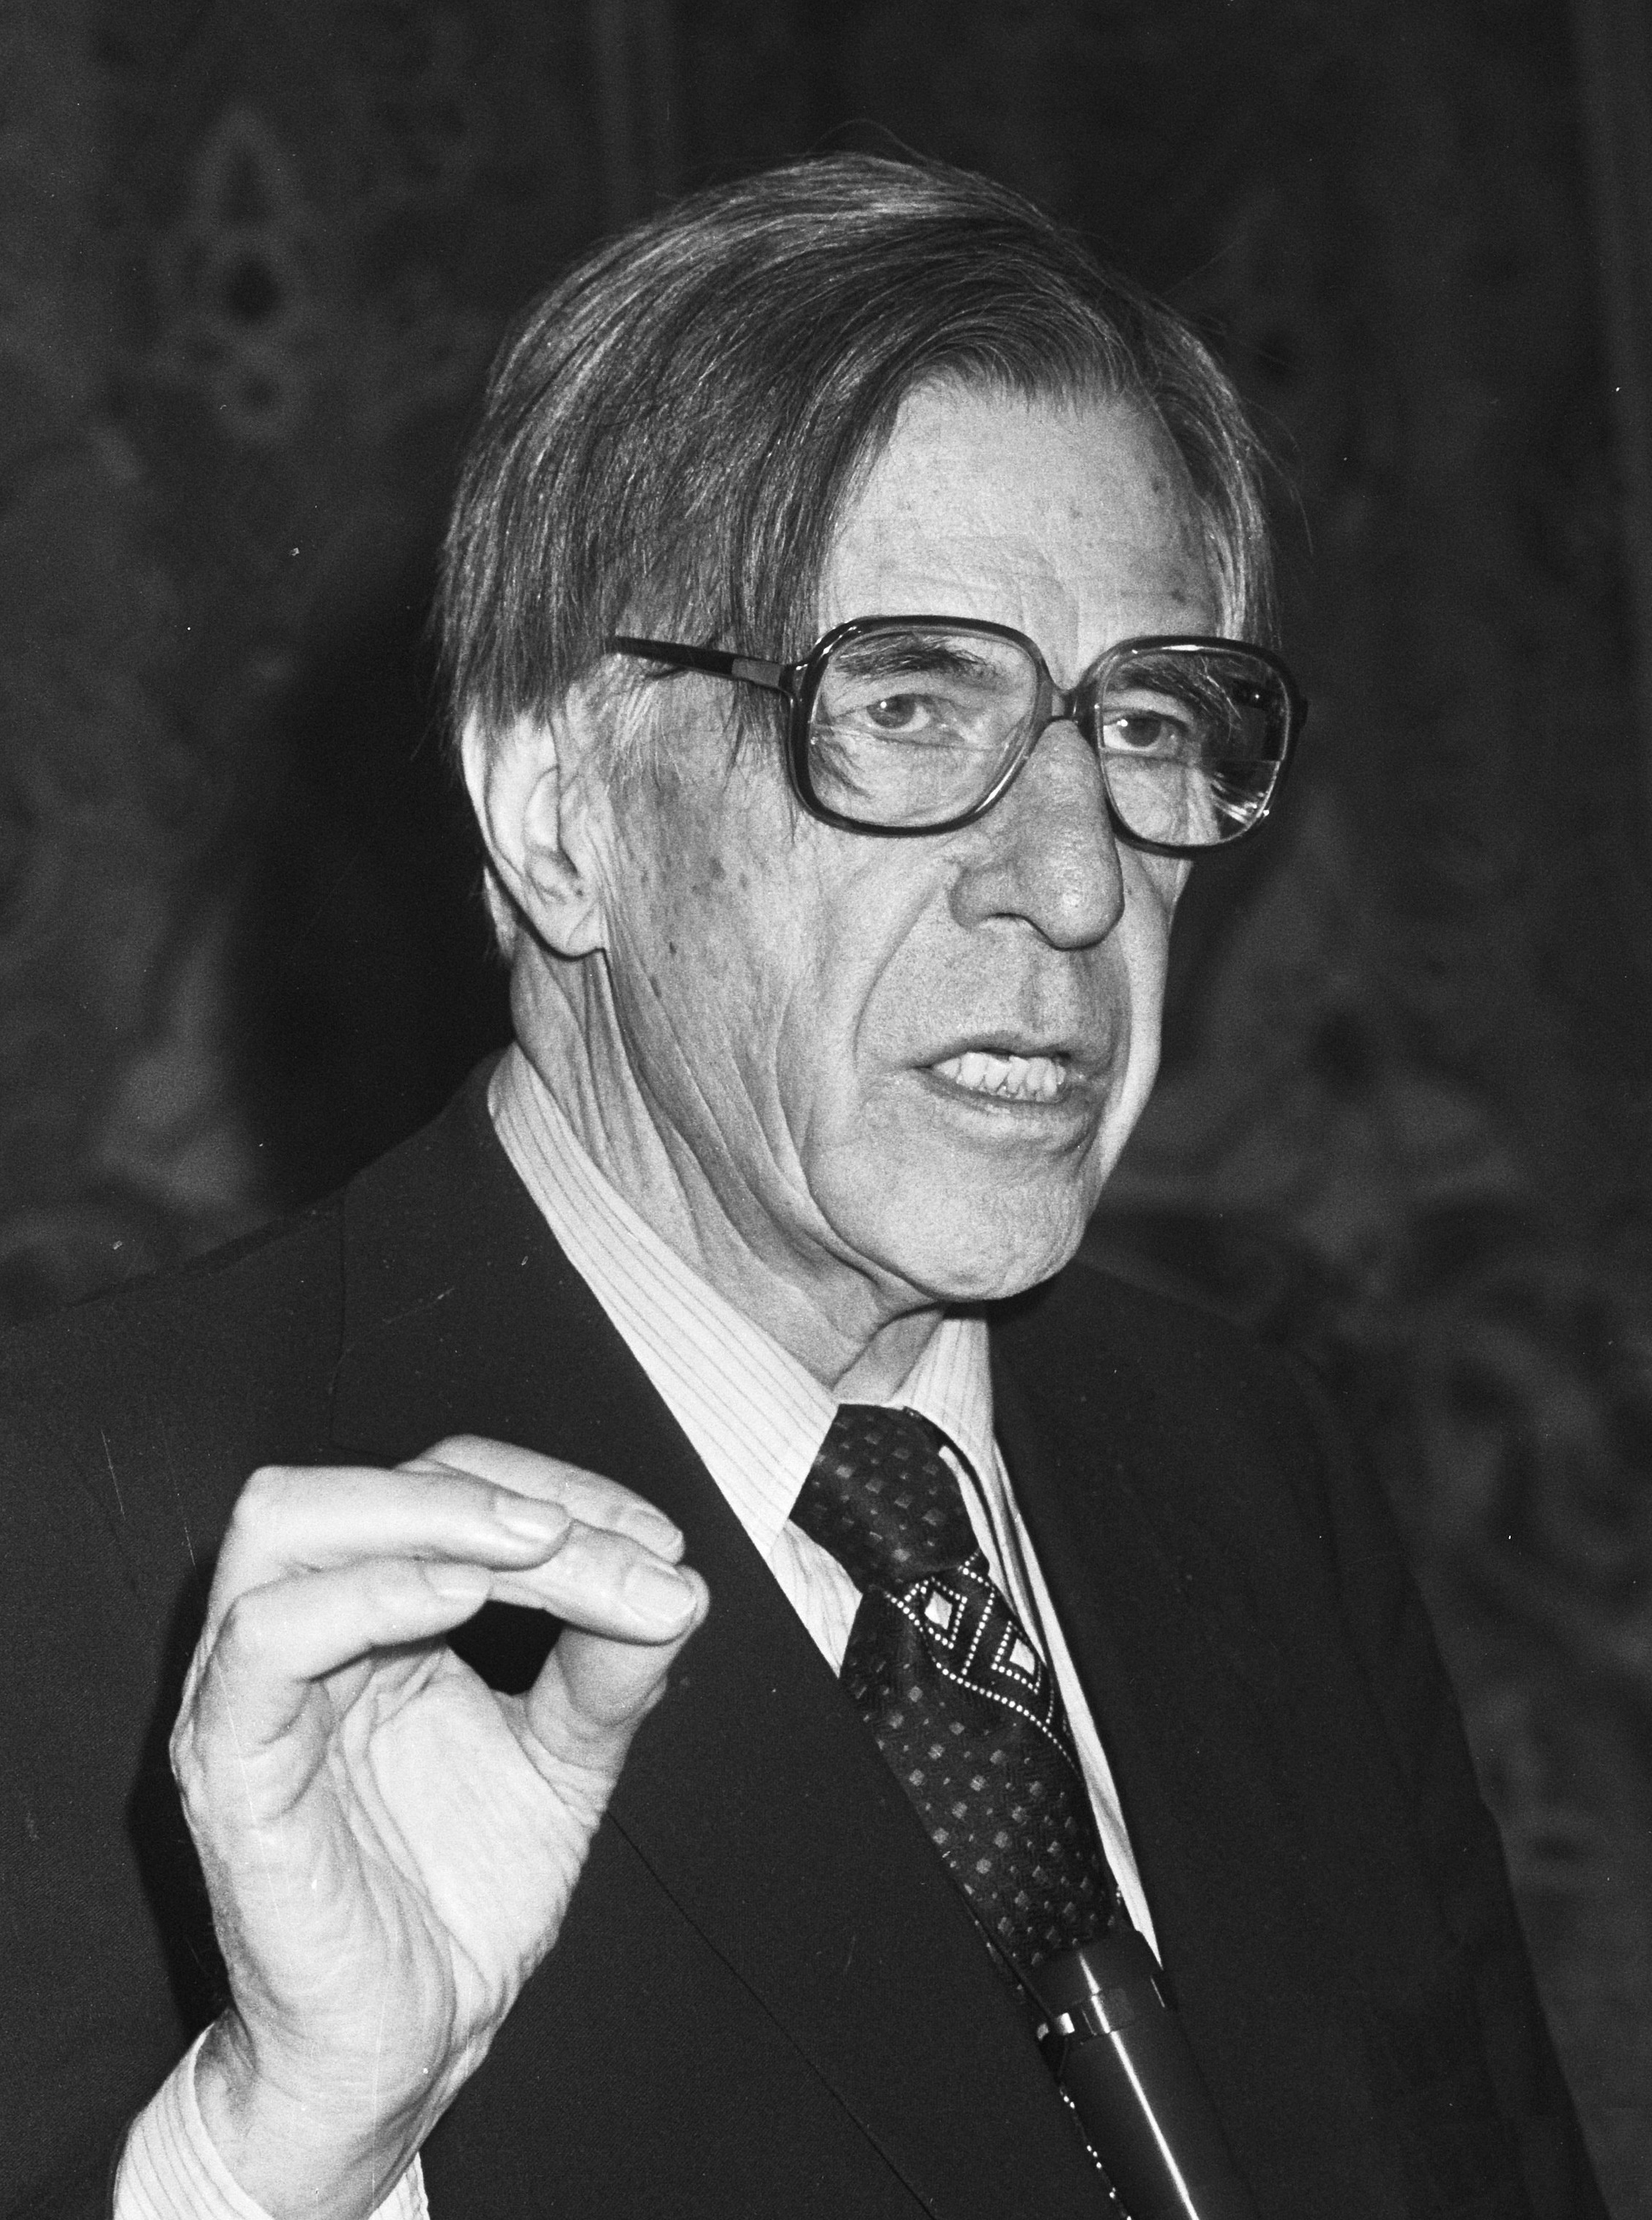 Portrait of John Kenneth Galbraith